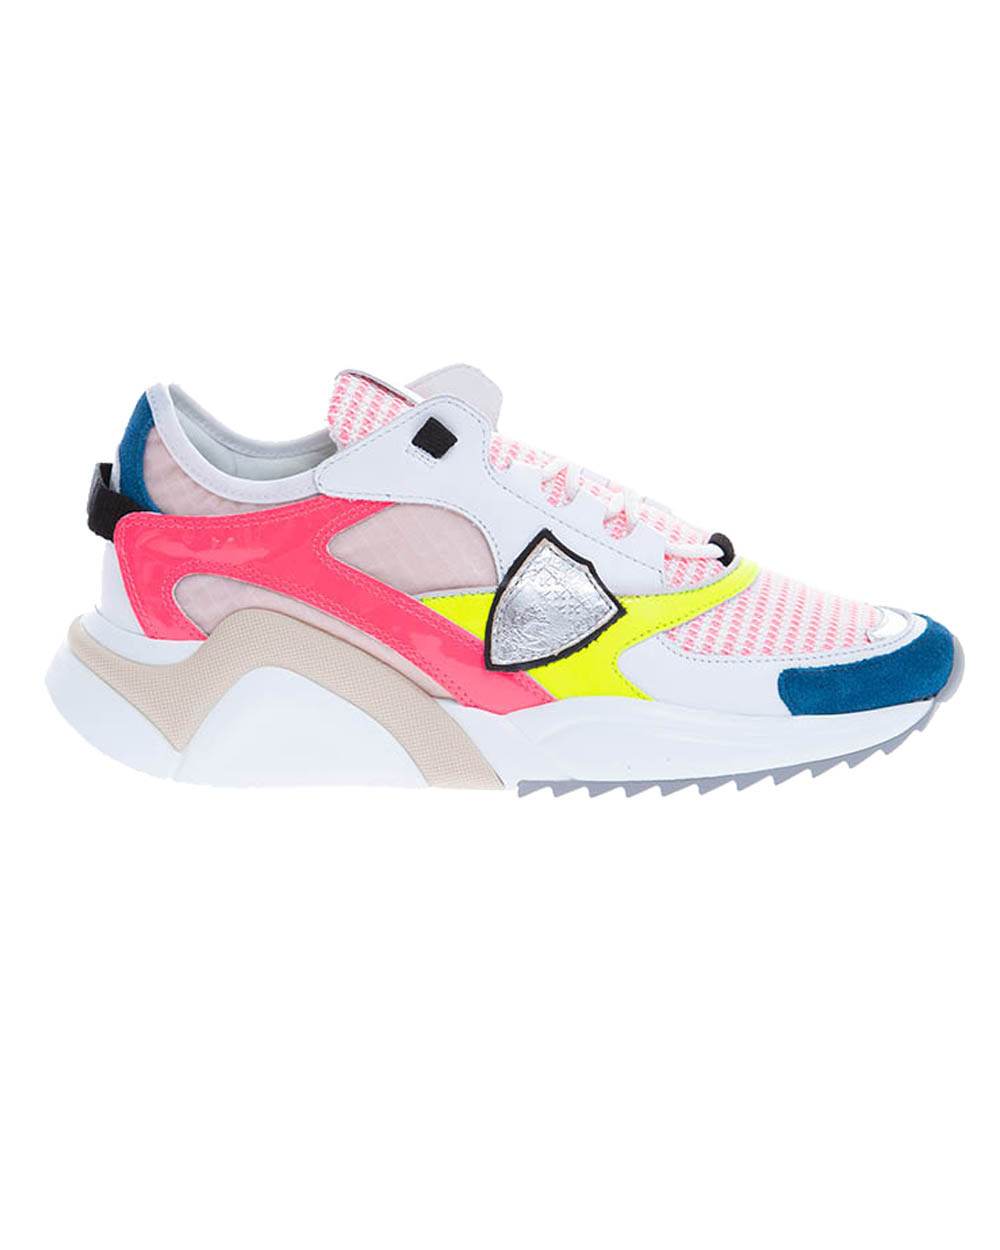 Eze - Leather and nylon sneakers with color scheme